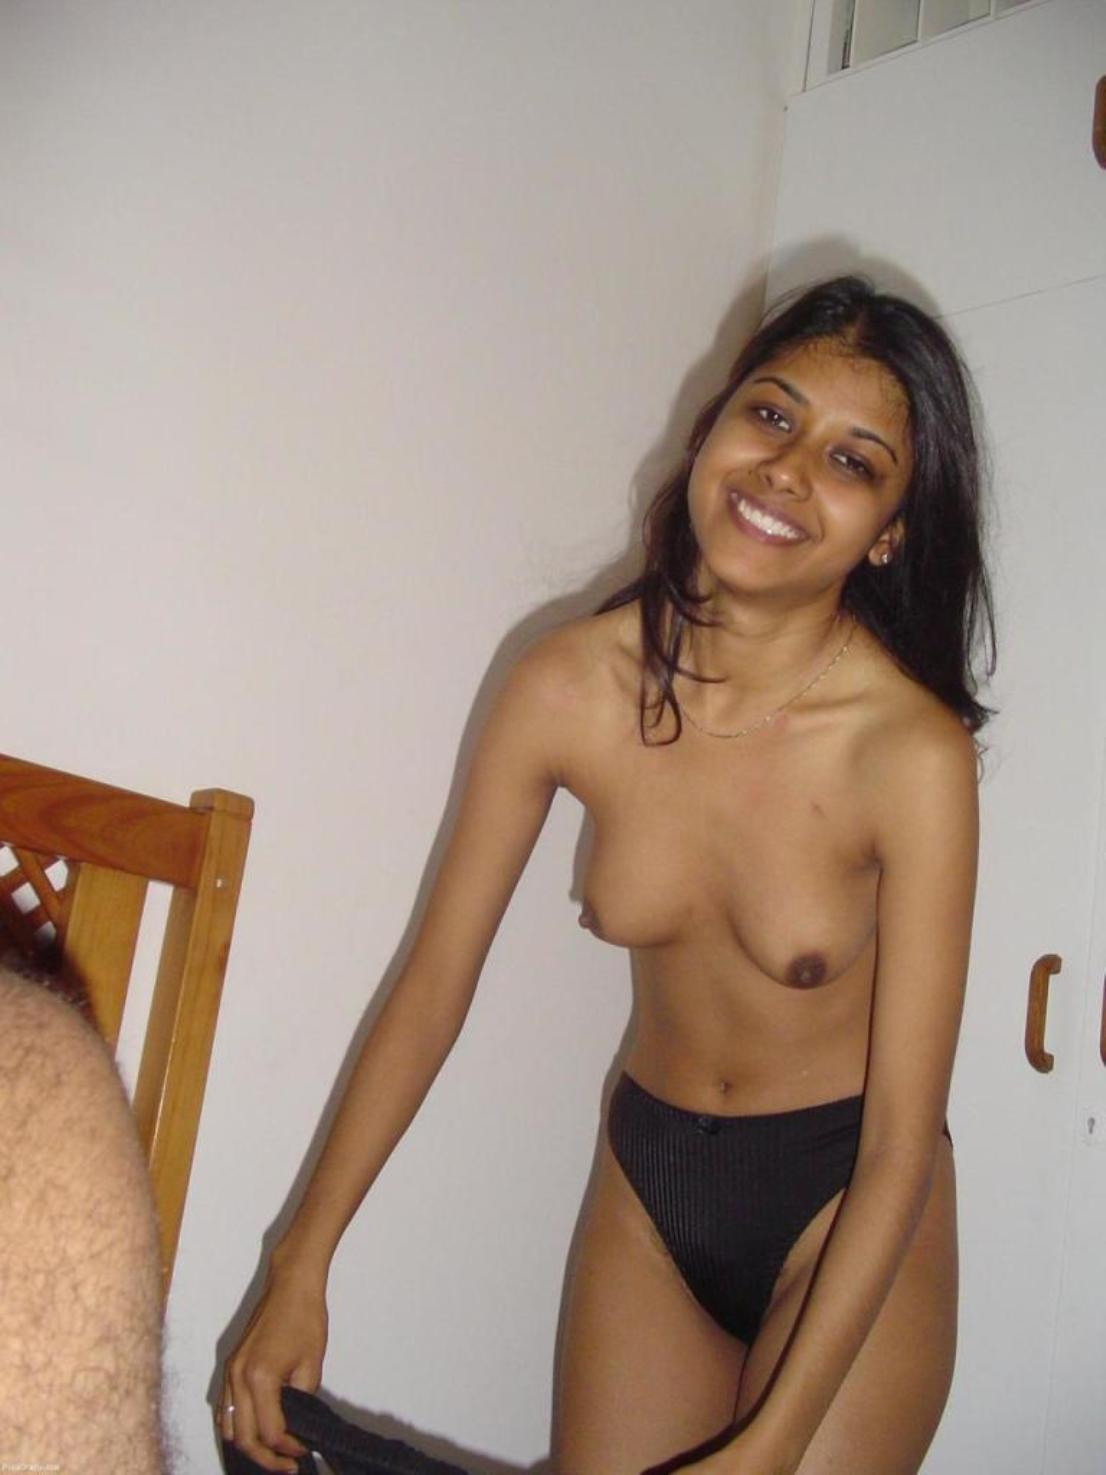 Indian Desi Aunty And Bhabhi Nude Photo Hot Bengali -4755